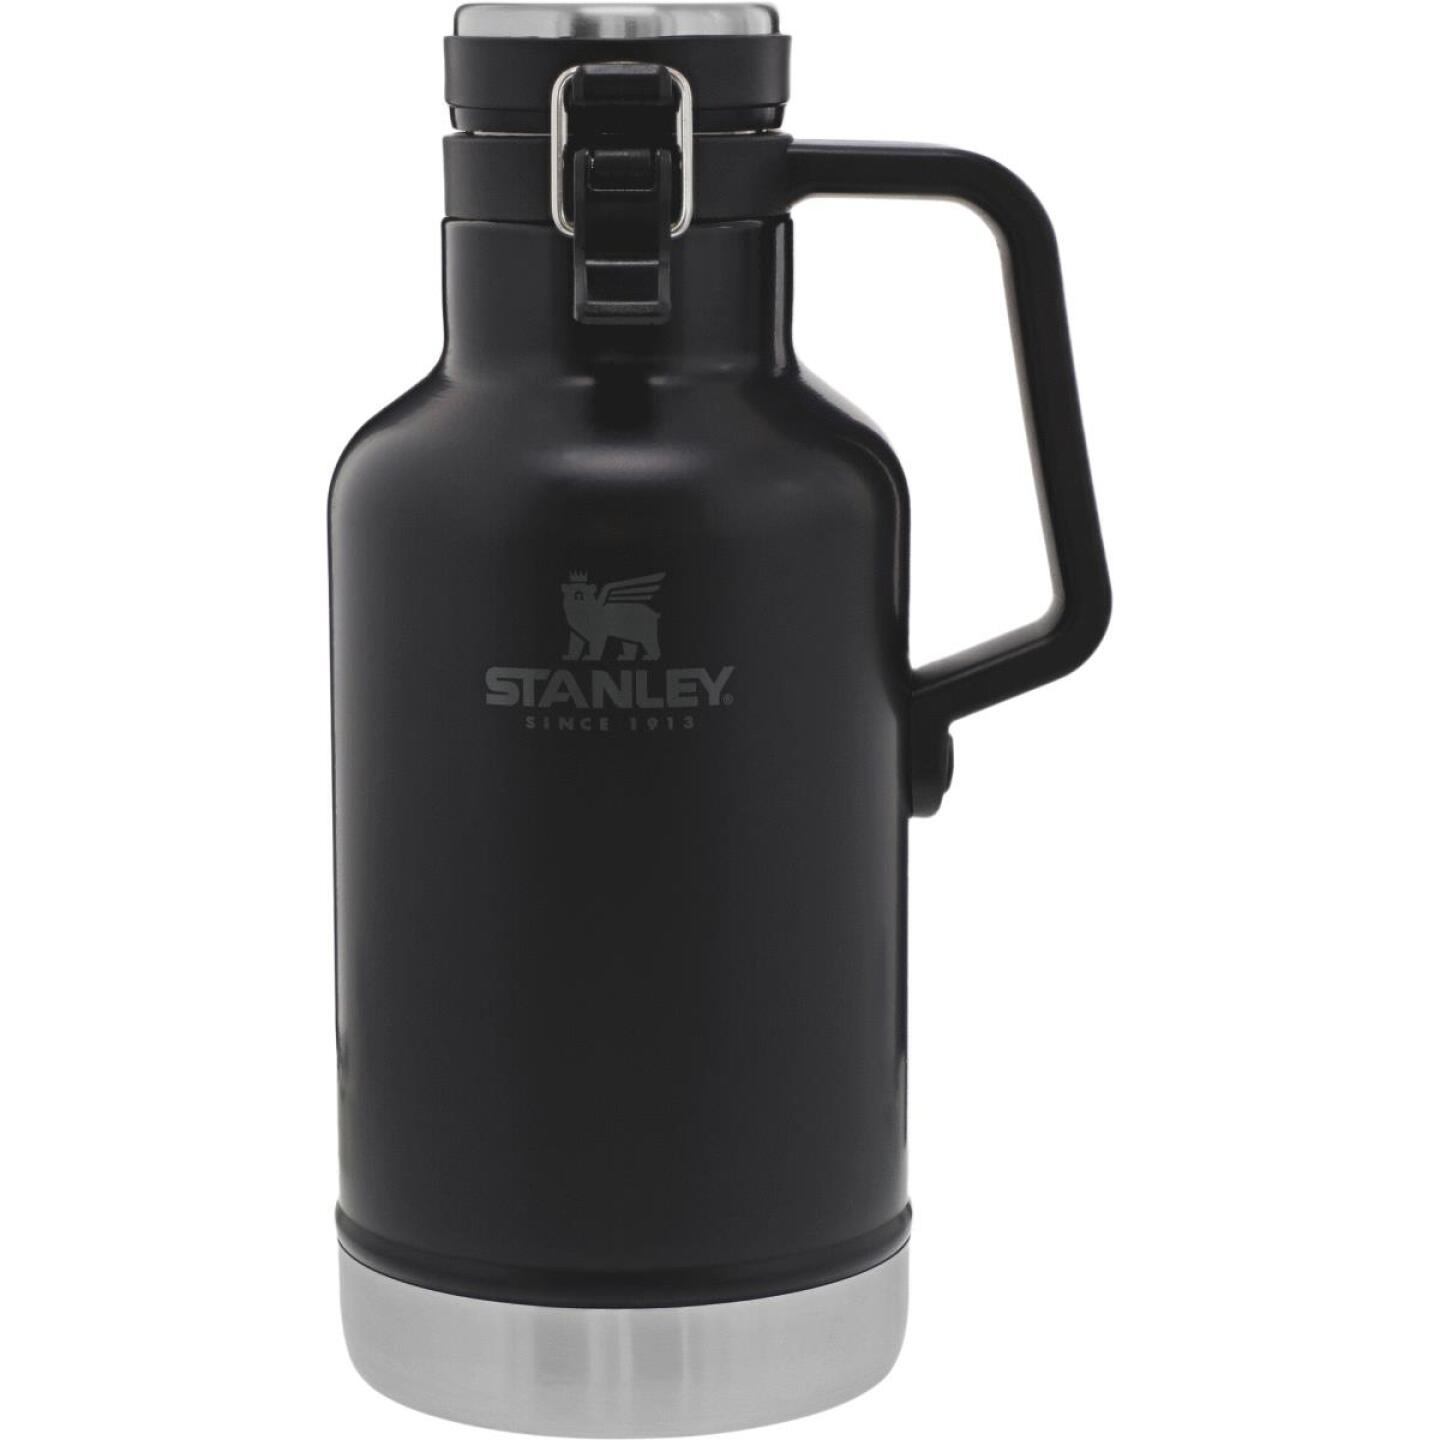 Stanley 64 Oz. Ceramivac GO Growler Bottle Image 1